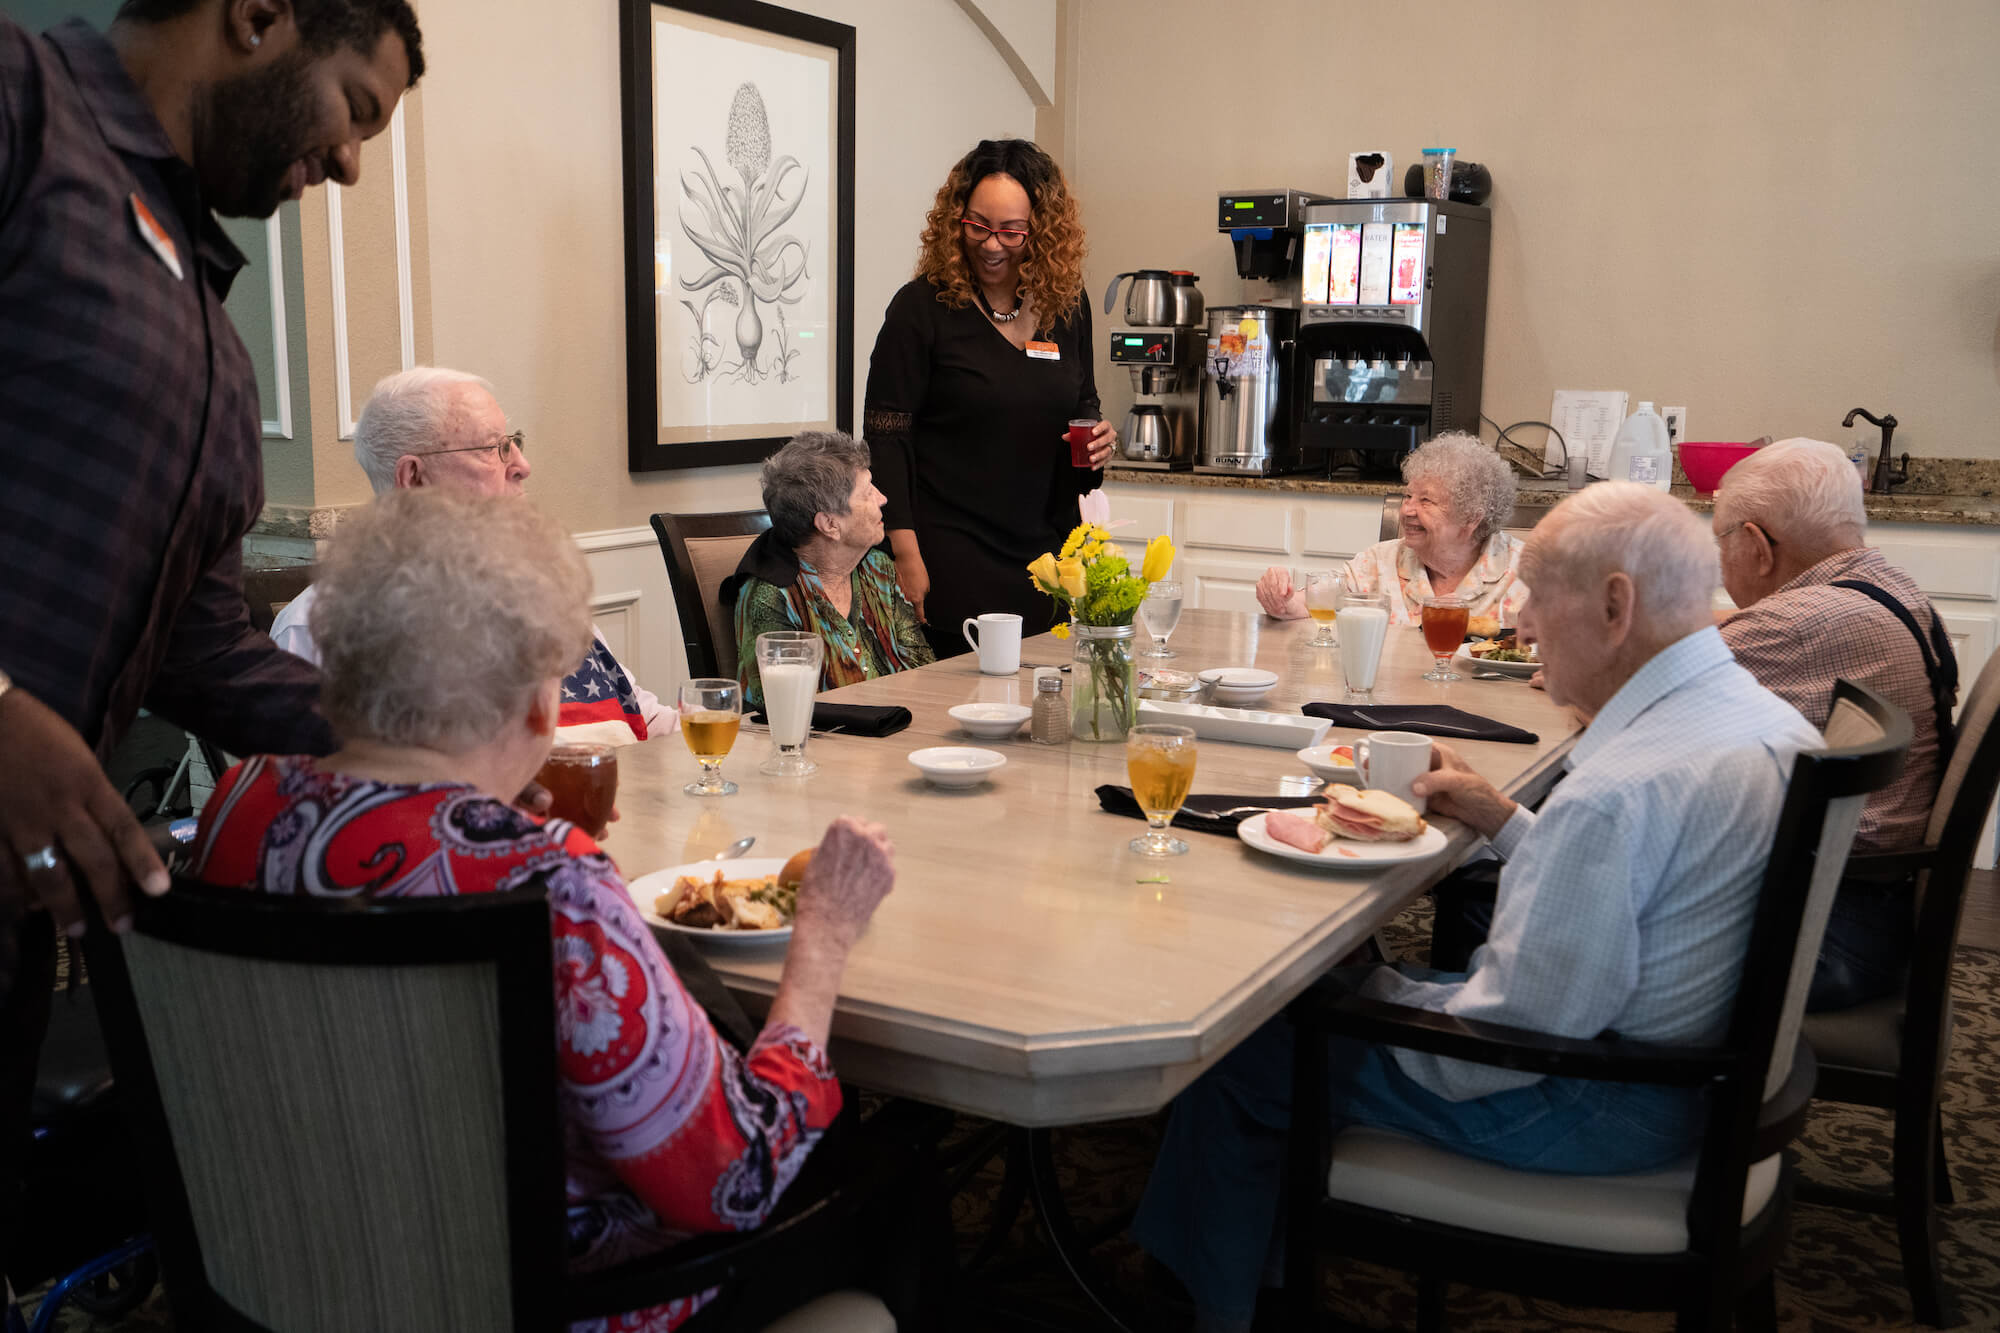 group of seniors dining together